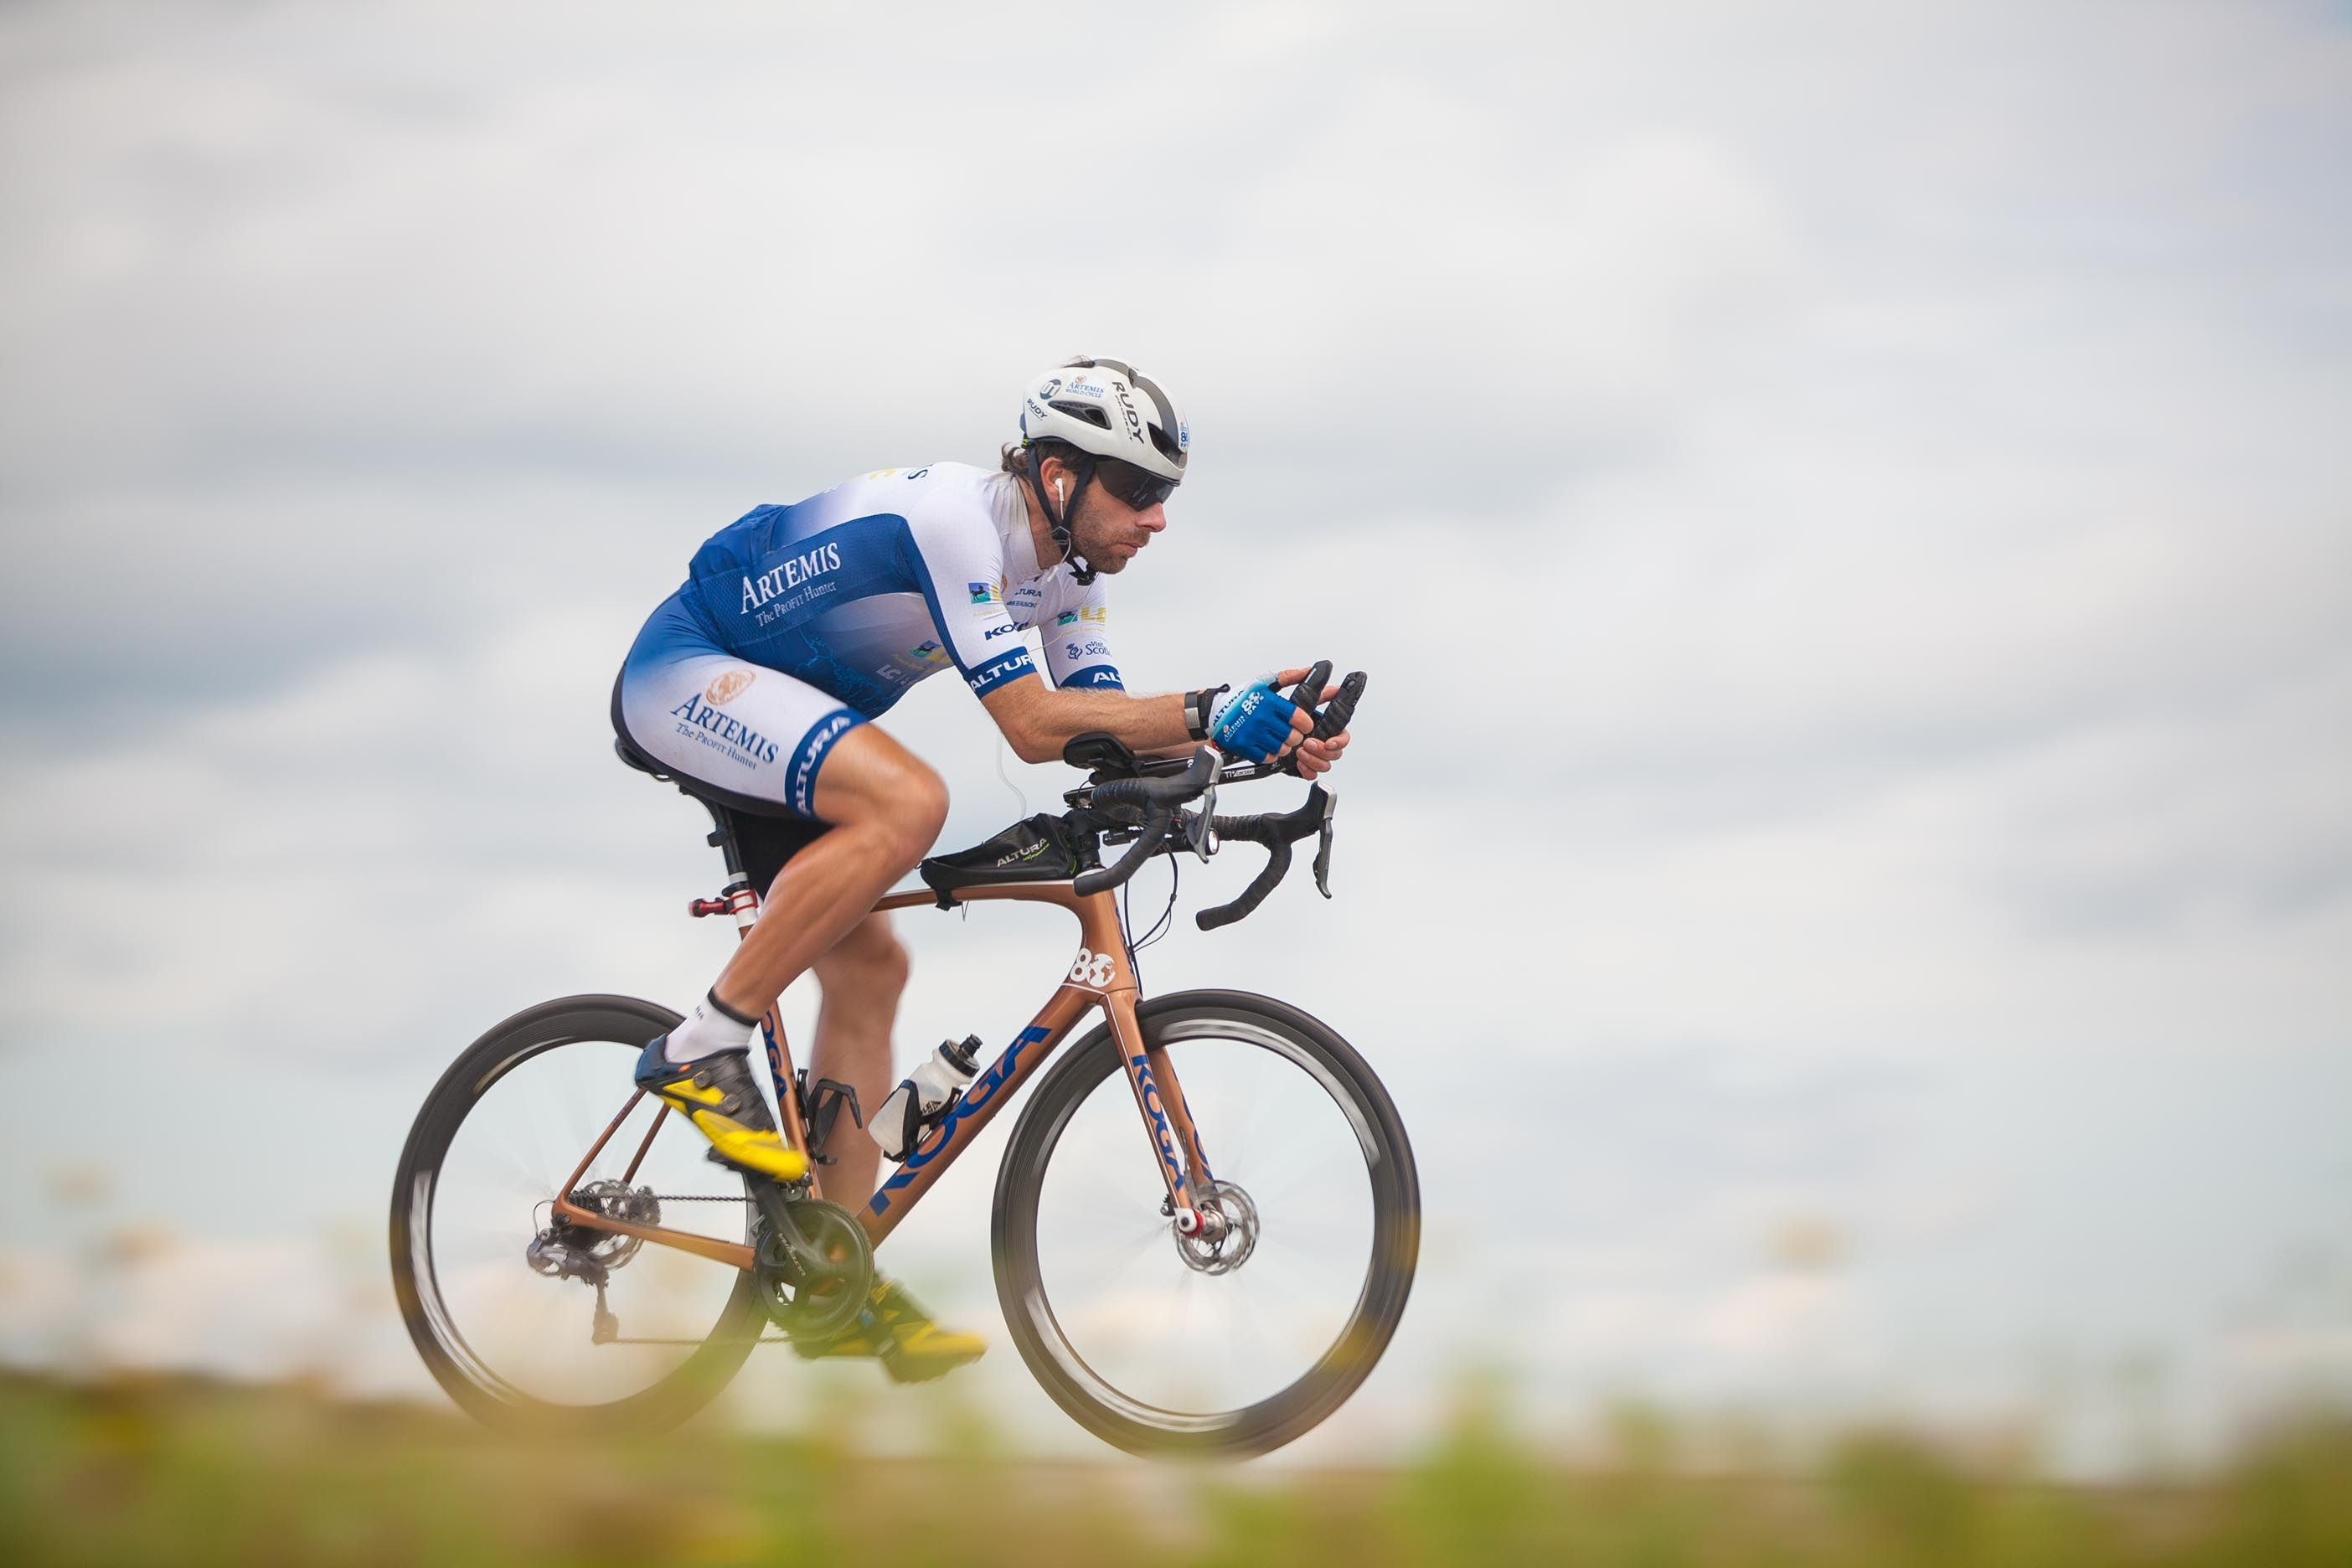 Day 16 of Mark Beaumont's round the world challenge